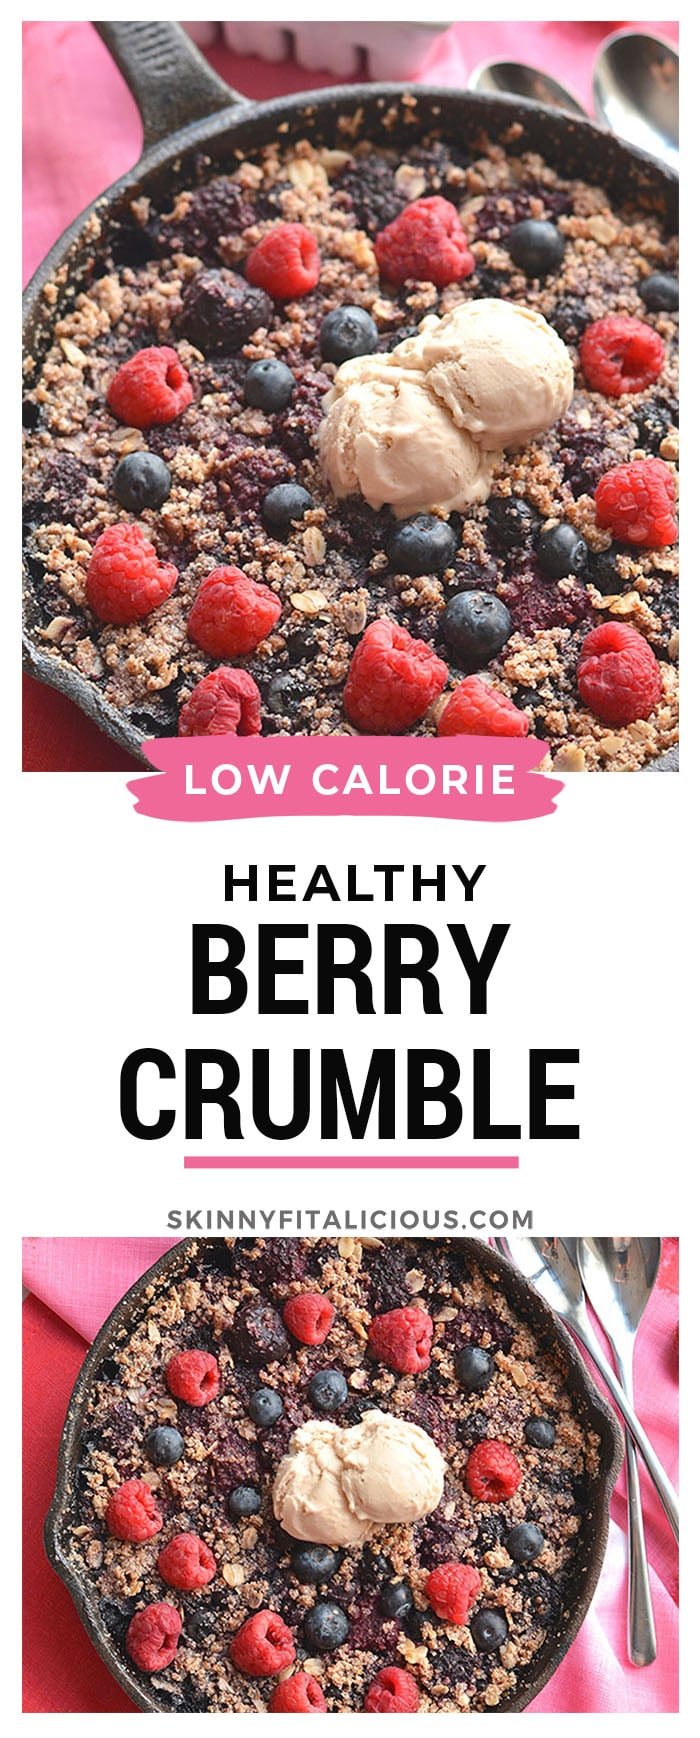 Healthy Berry Quinoa Crumble!A gluten free, protein-packed warm weather dessert. Lightly sweetened, perfect for sharing and parties! Gluten Free + Vegan